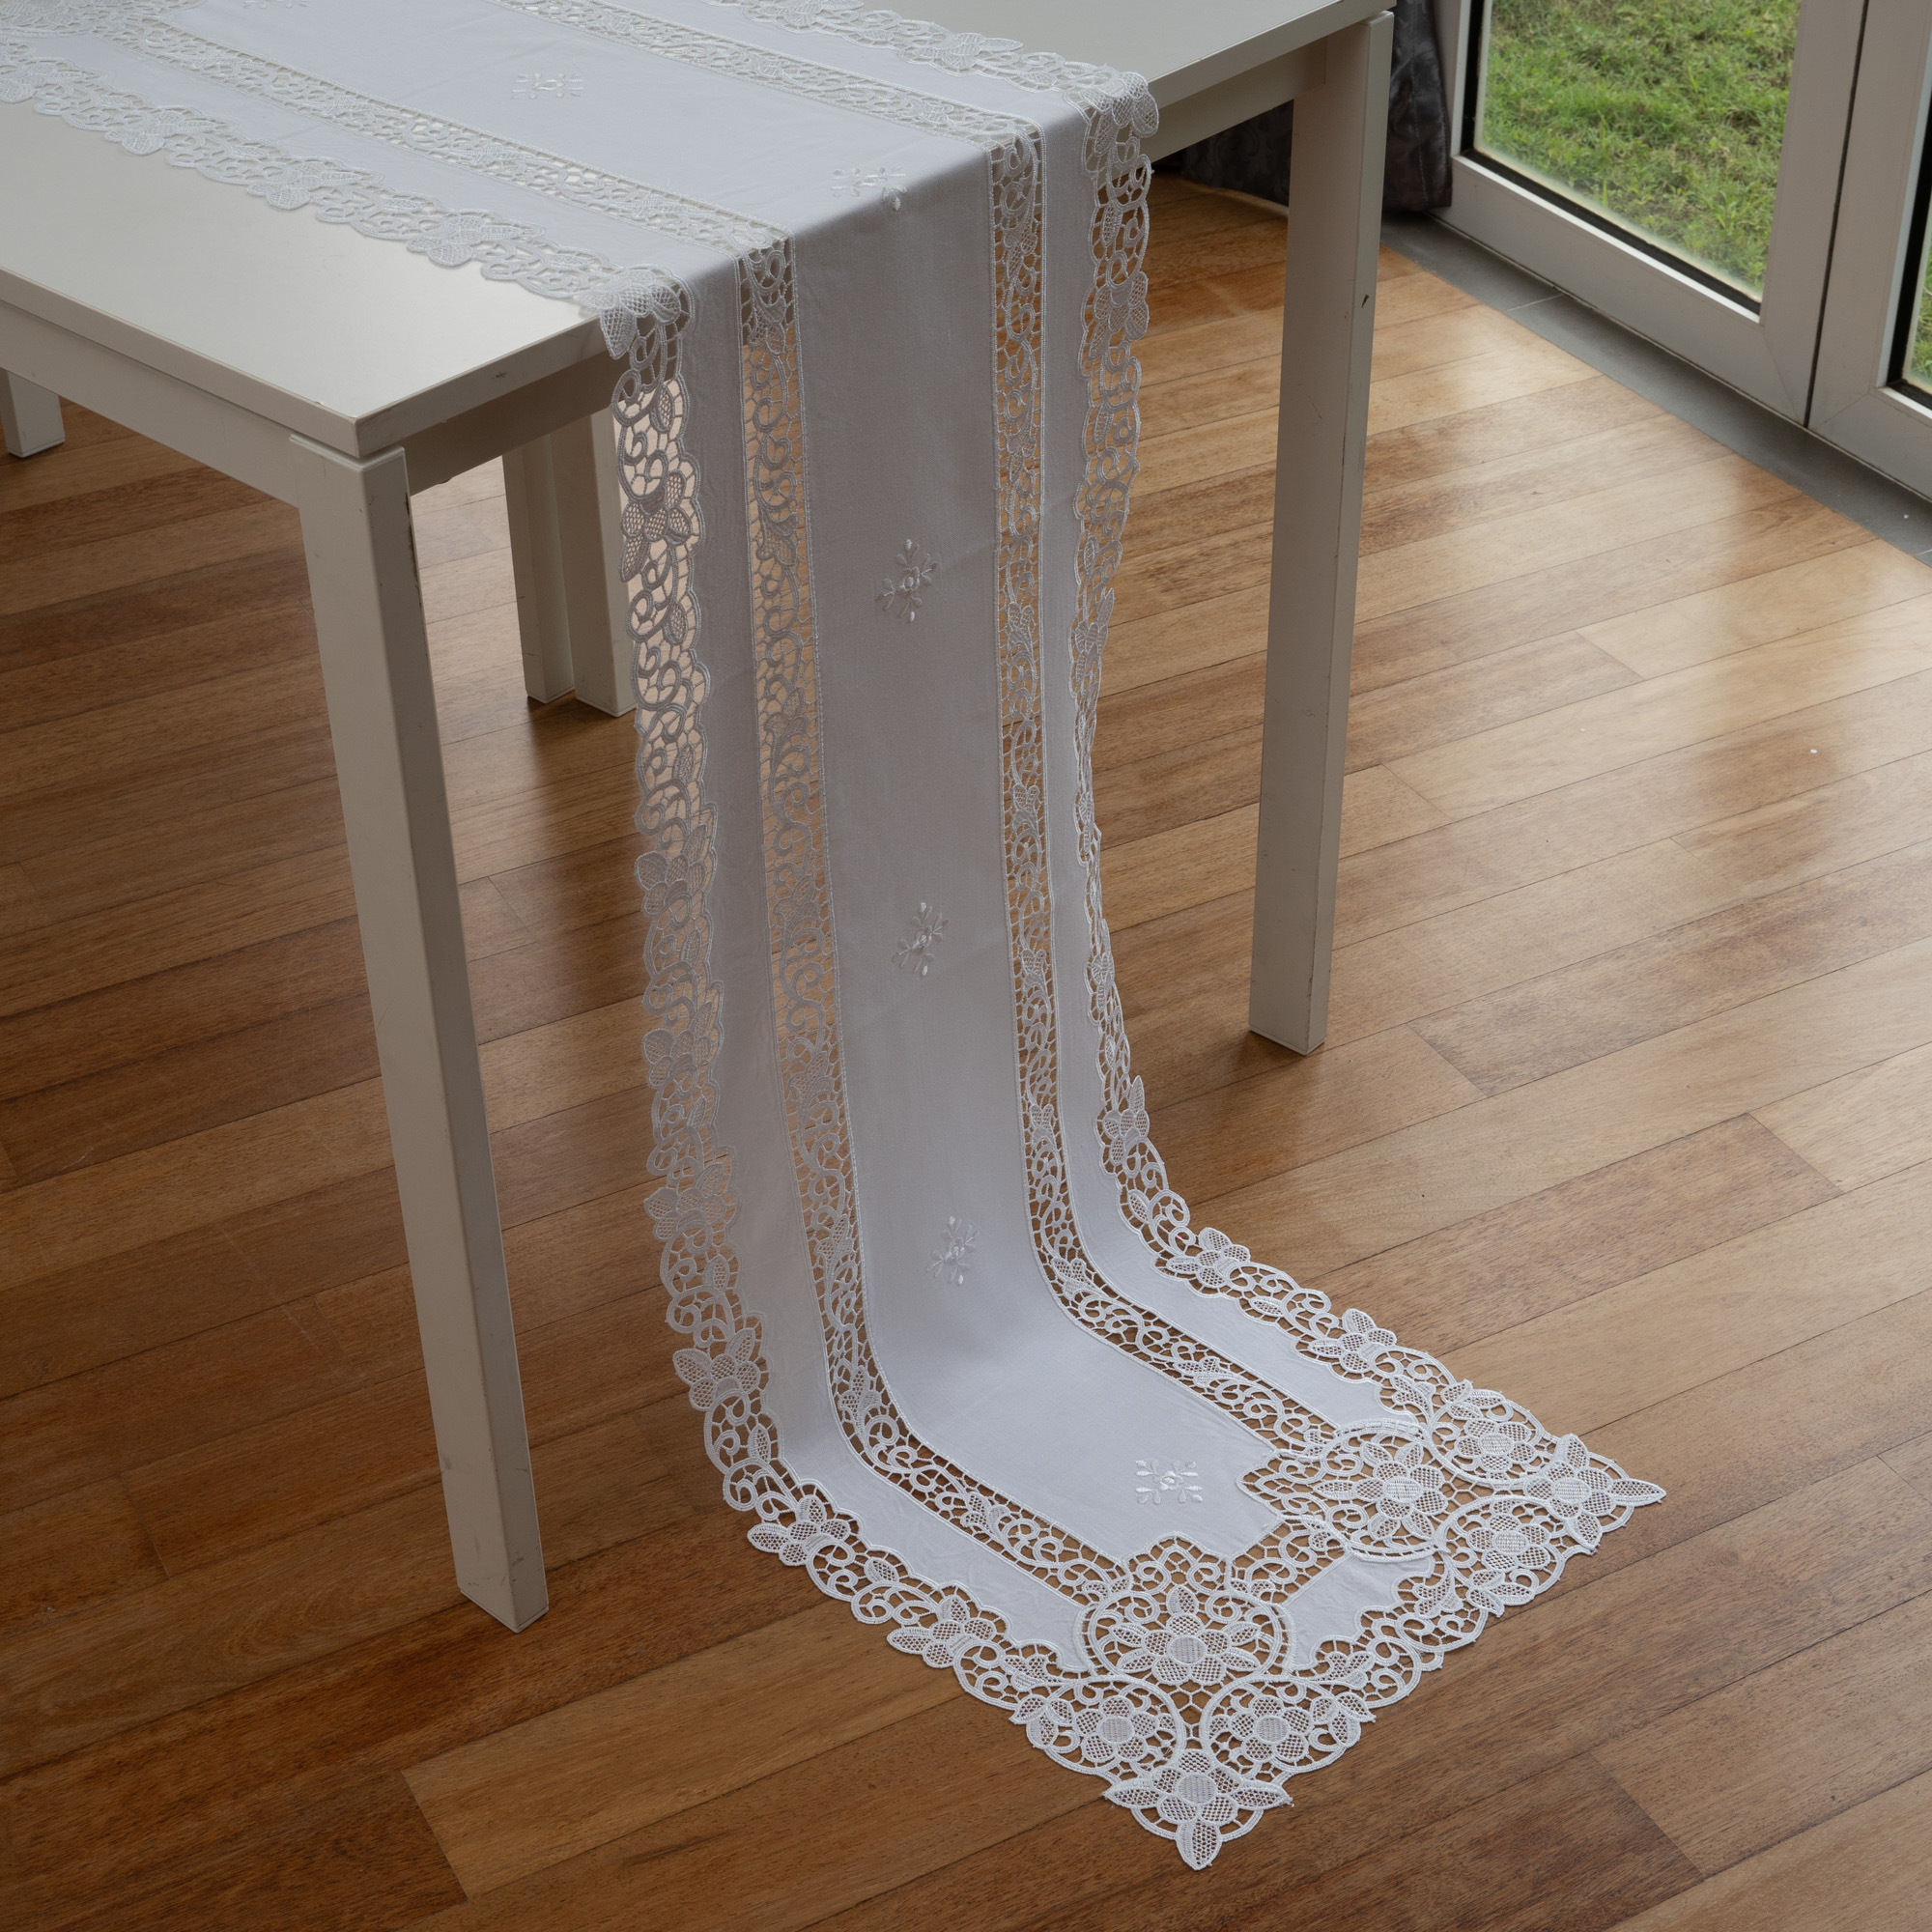 Lace & Embroidery SRB22 Anglo Lace Embroidered Soft Floral Table Runner/Dresser Scarf. Easy Care Polycotton.  Multi-Size (White)